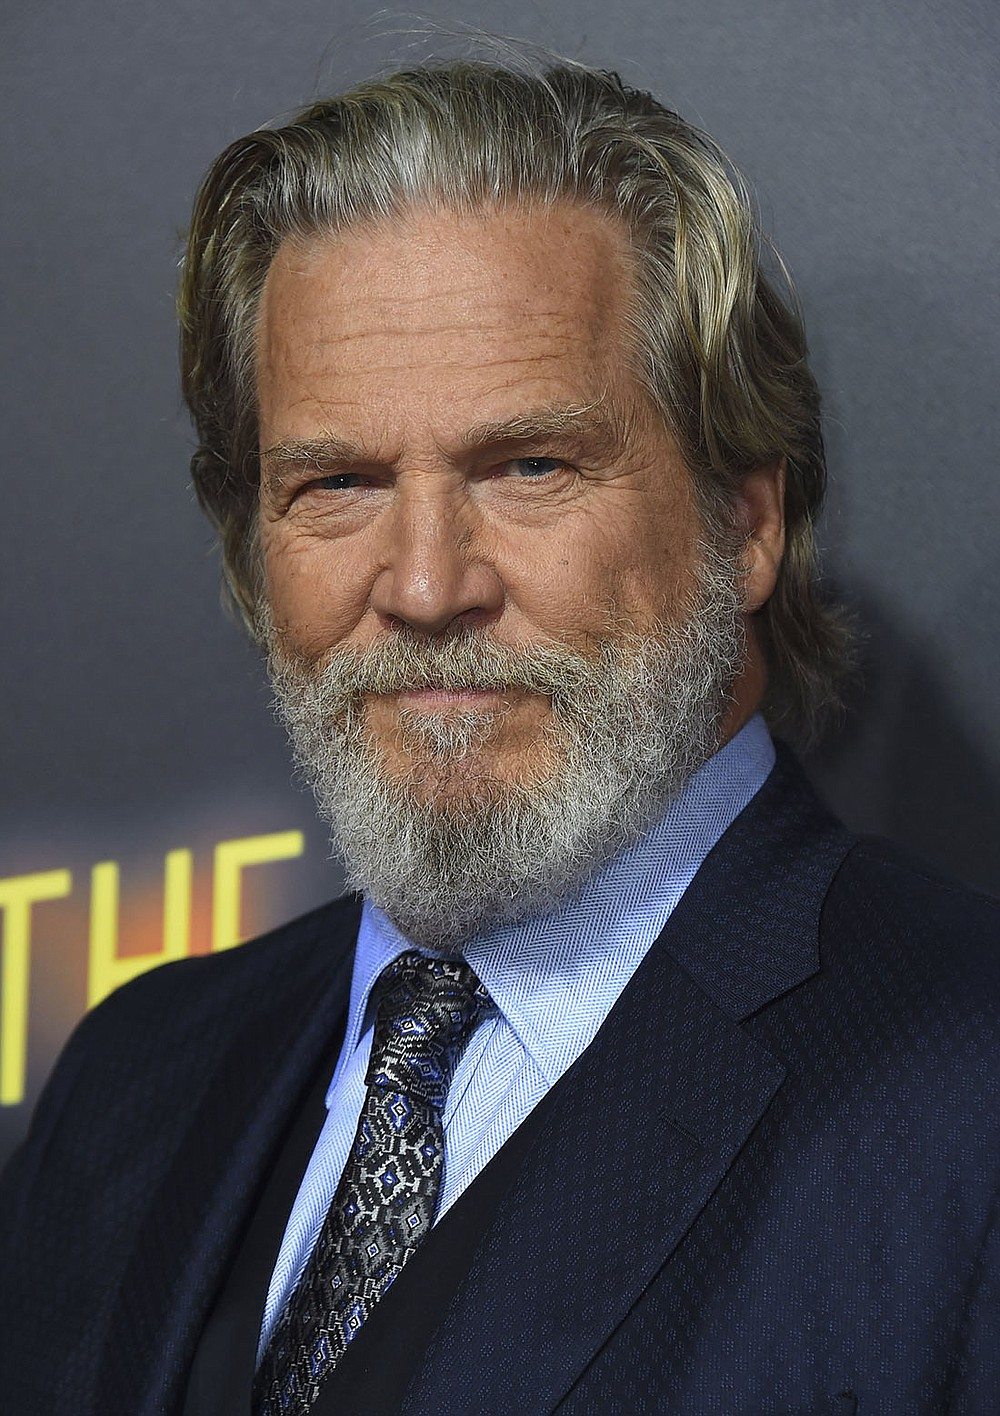 """FILE - In this Sept. 22, 2018 file photo, Jeff Bridges arrives at the Los Angeles premiere of """"Bad Times at the El Royale."""" The Hollywood Foreign Press Association announced Monday that Bridges will be honored with the Cecil B. DeMille Award at the Golden Globe Awards ceremony on Jan. 6, 2019. The actor is known for starring in films including """"Crazy Heart,""""ù """"The Big Lebowski,""""ù """"True Grit""""ù and """"Hell or High Water.""""ù (Photo by Jordan Strauss/Invision/AP, File)"""